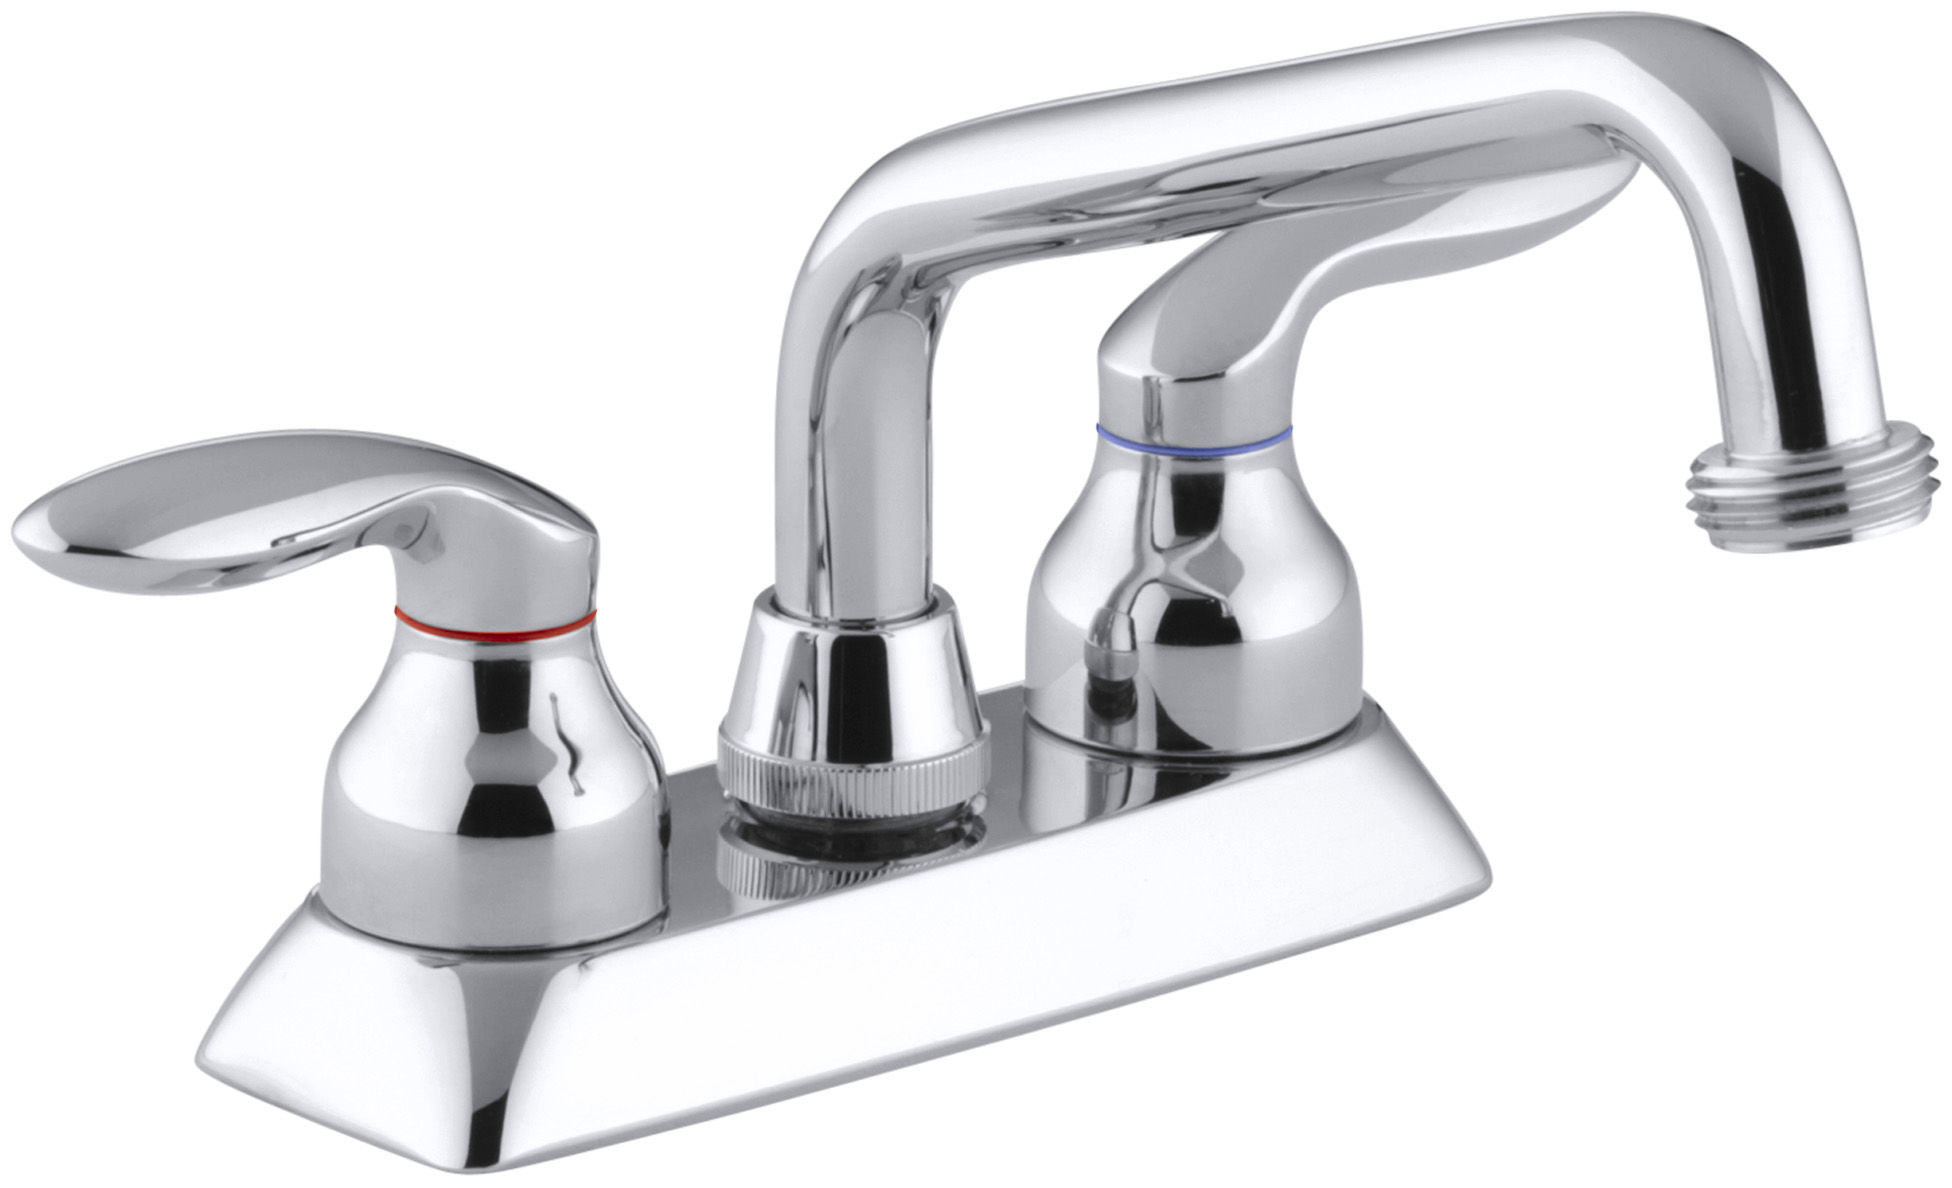 peerless sinks size org medium design category faucet sink walmart kitchen tulsiplant home faucets com depot of